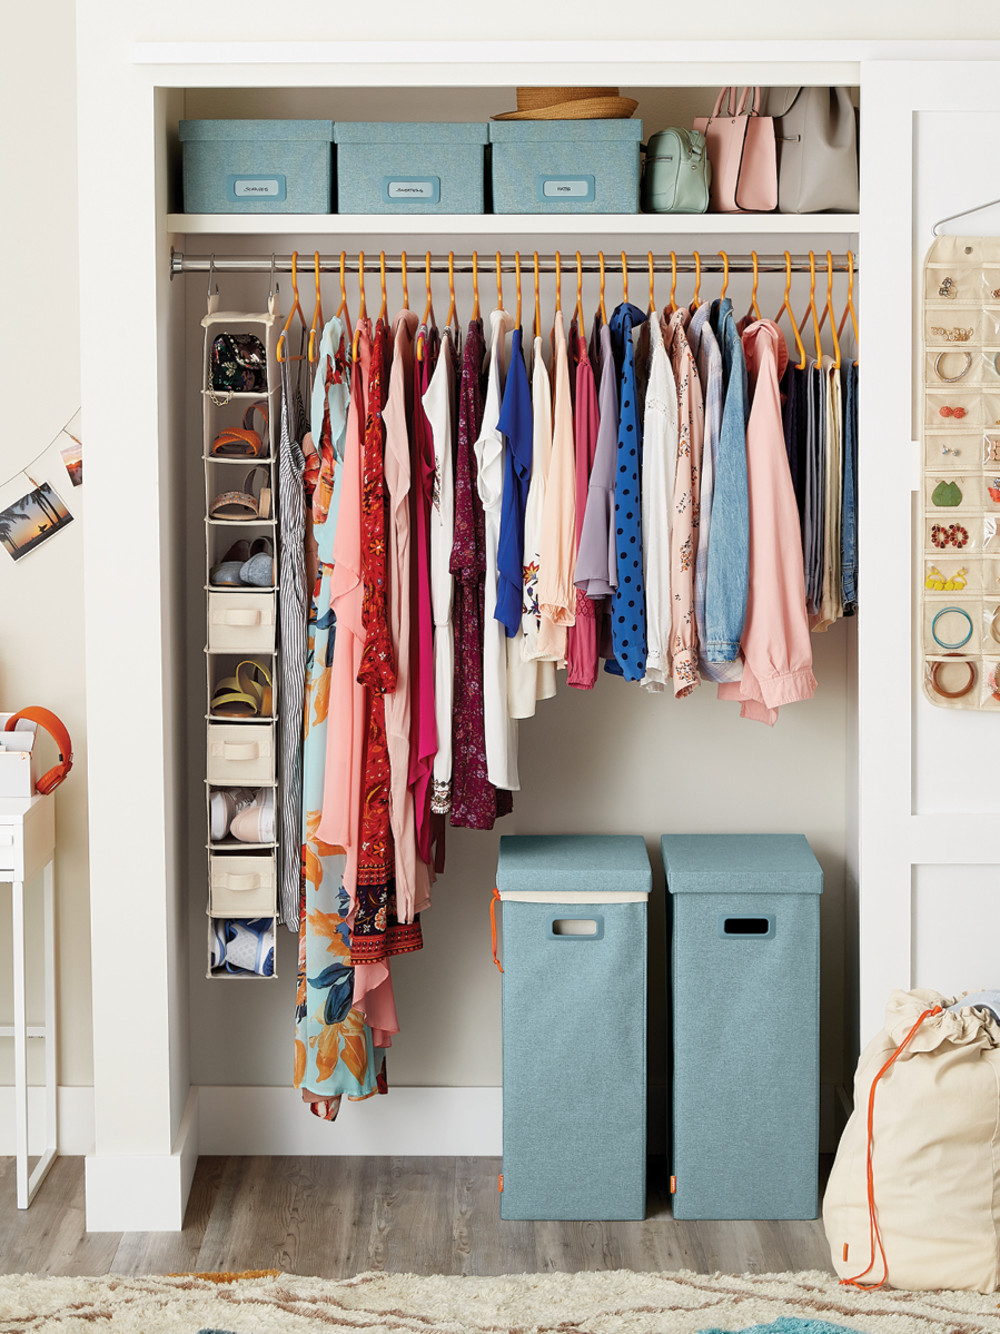 how without your or at return container property over organize in pickup free clothes to transport group dresser closet purchases get merchandise storage a all the on day store extra great